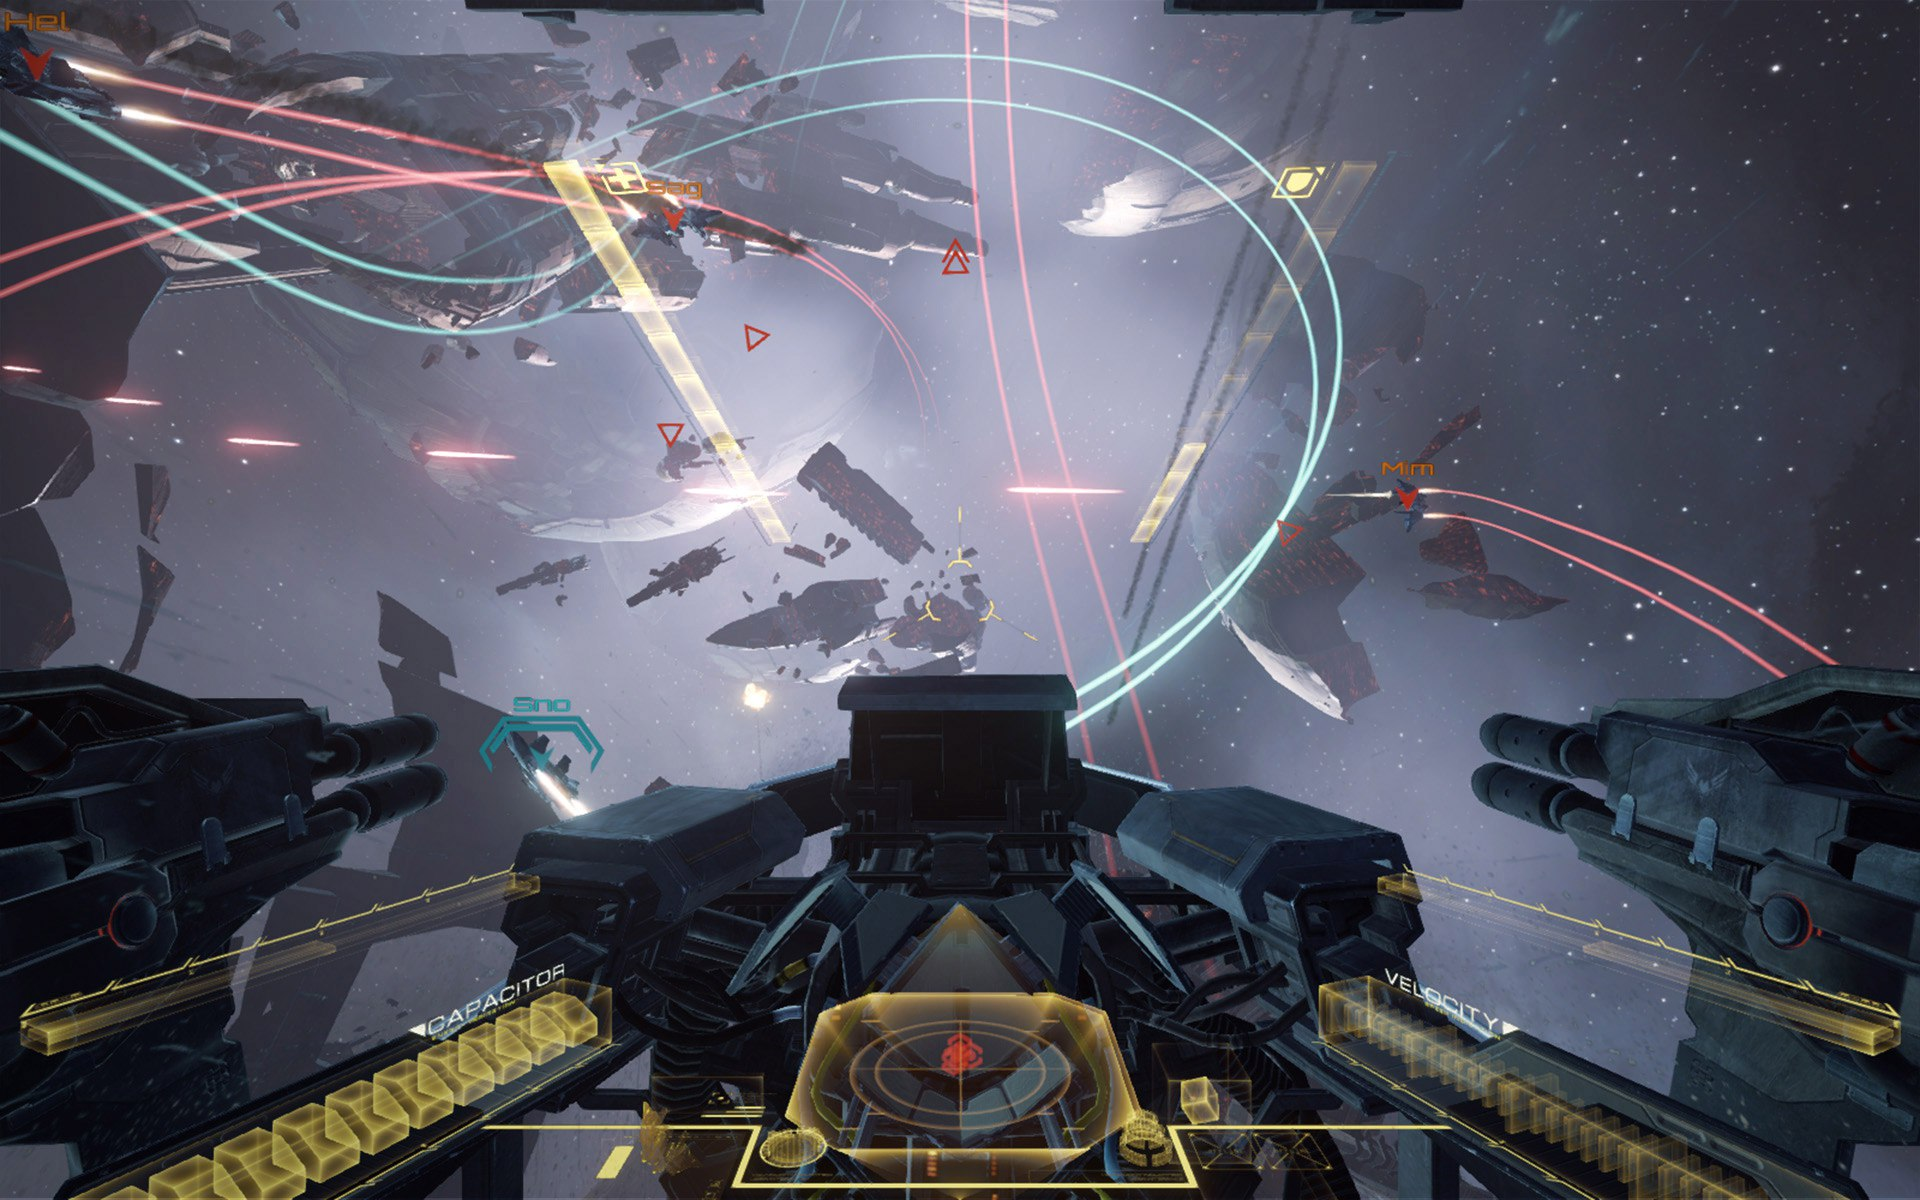 EVE Valkyrie, Steam VR, EVE Fanfest 2015